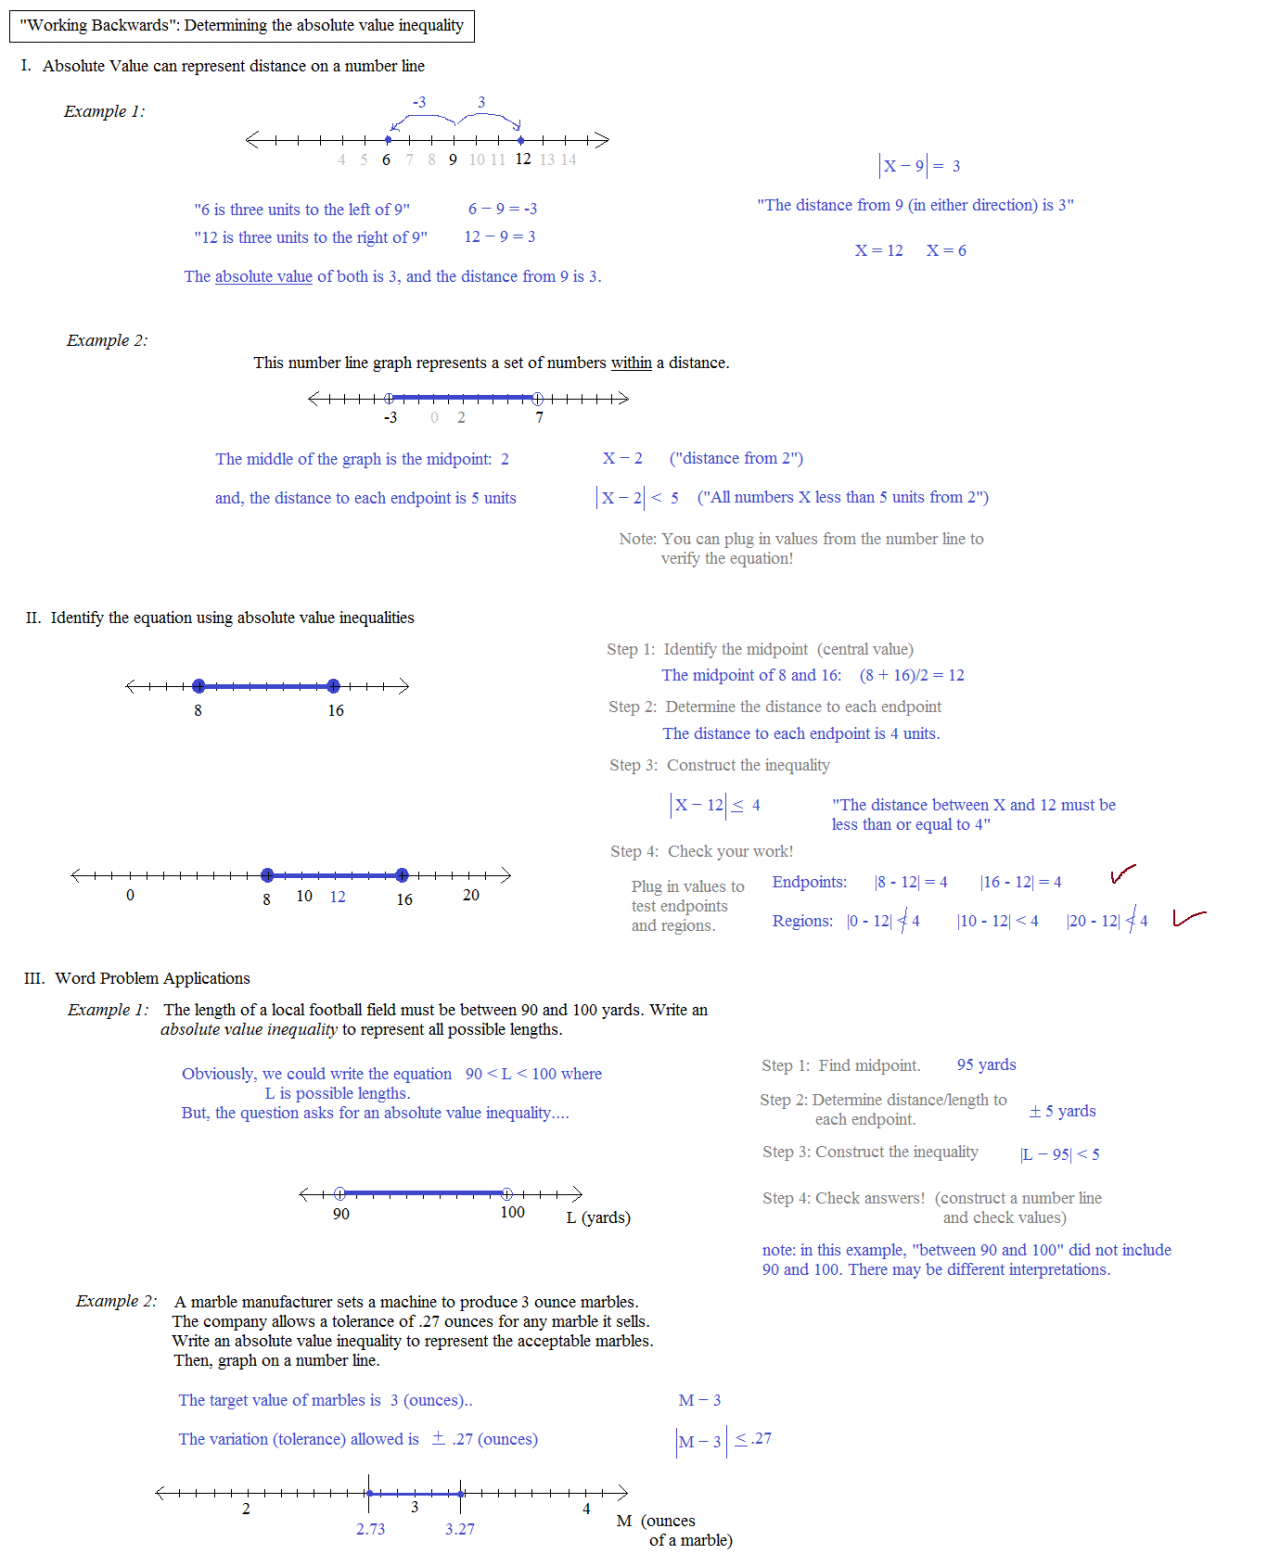 worksheet Absolute Value Inequalities Worksheet With Answers – Absolute Value Inequality Worksheet